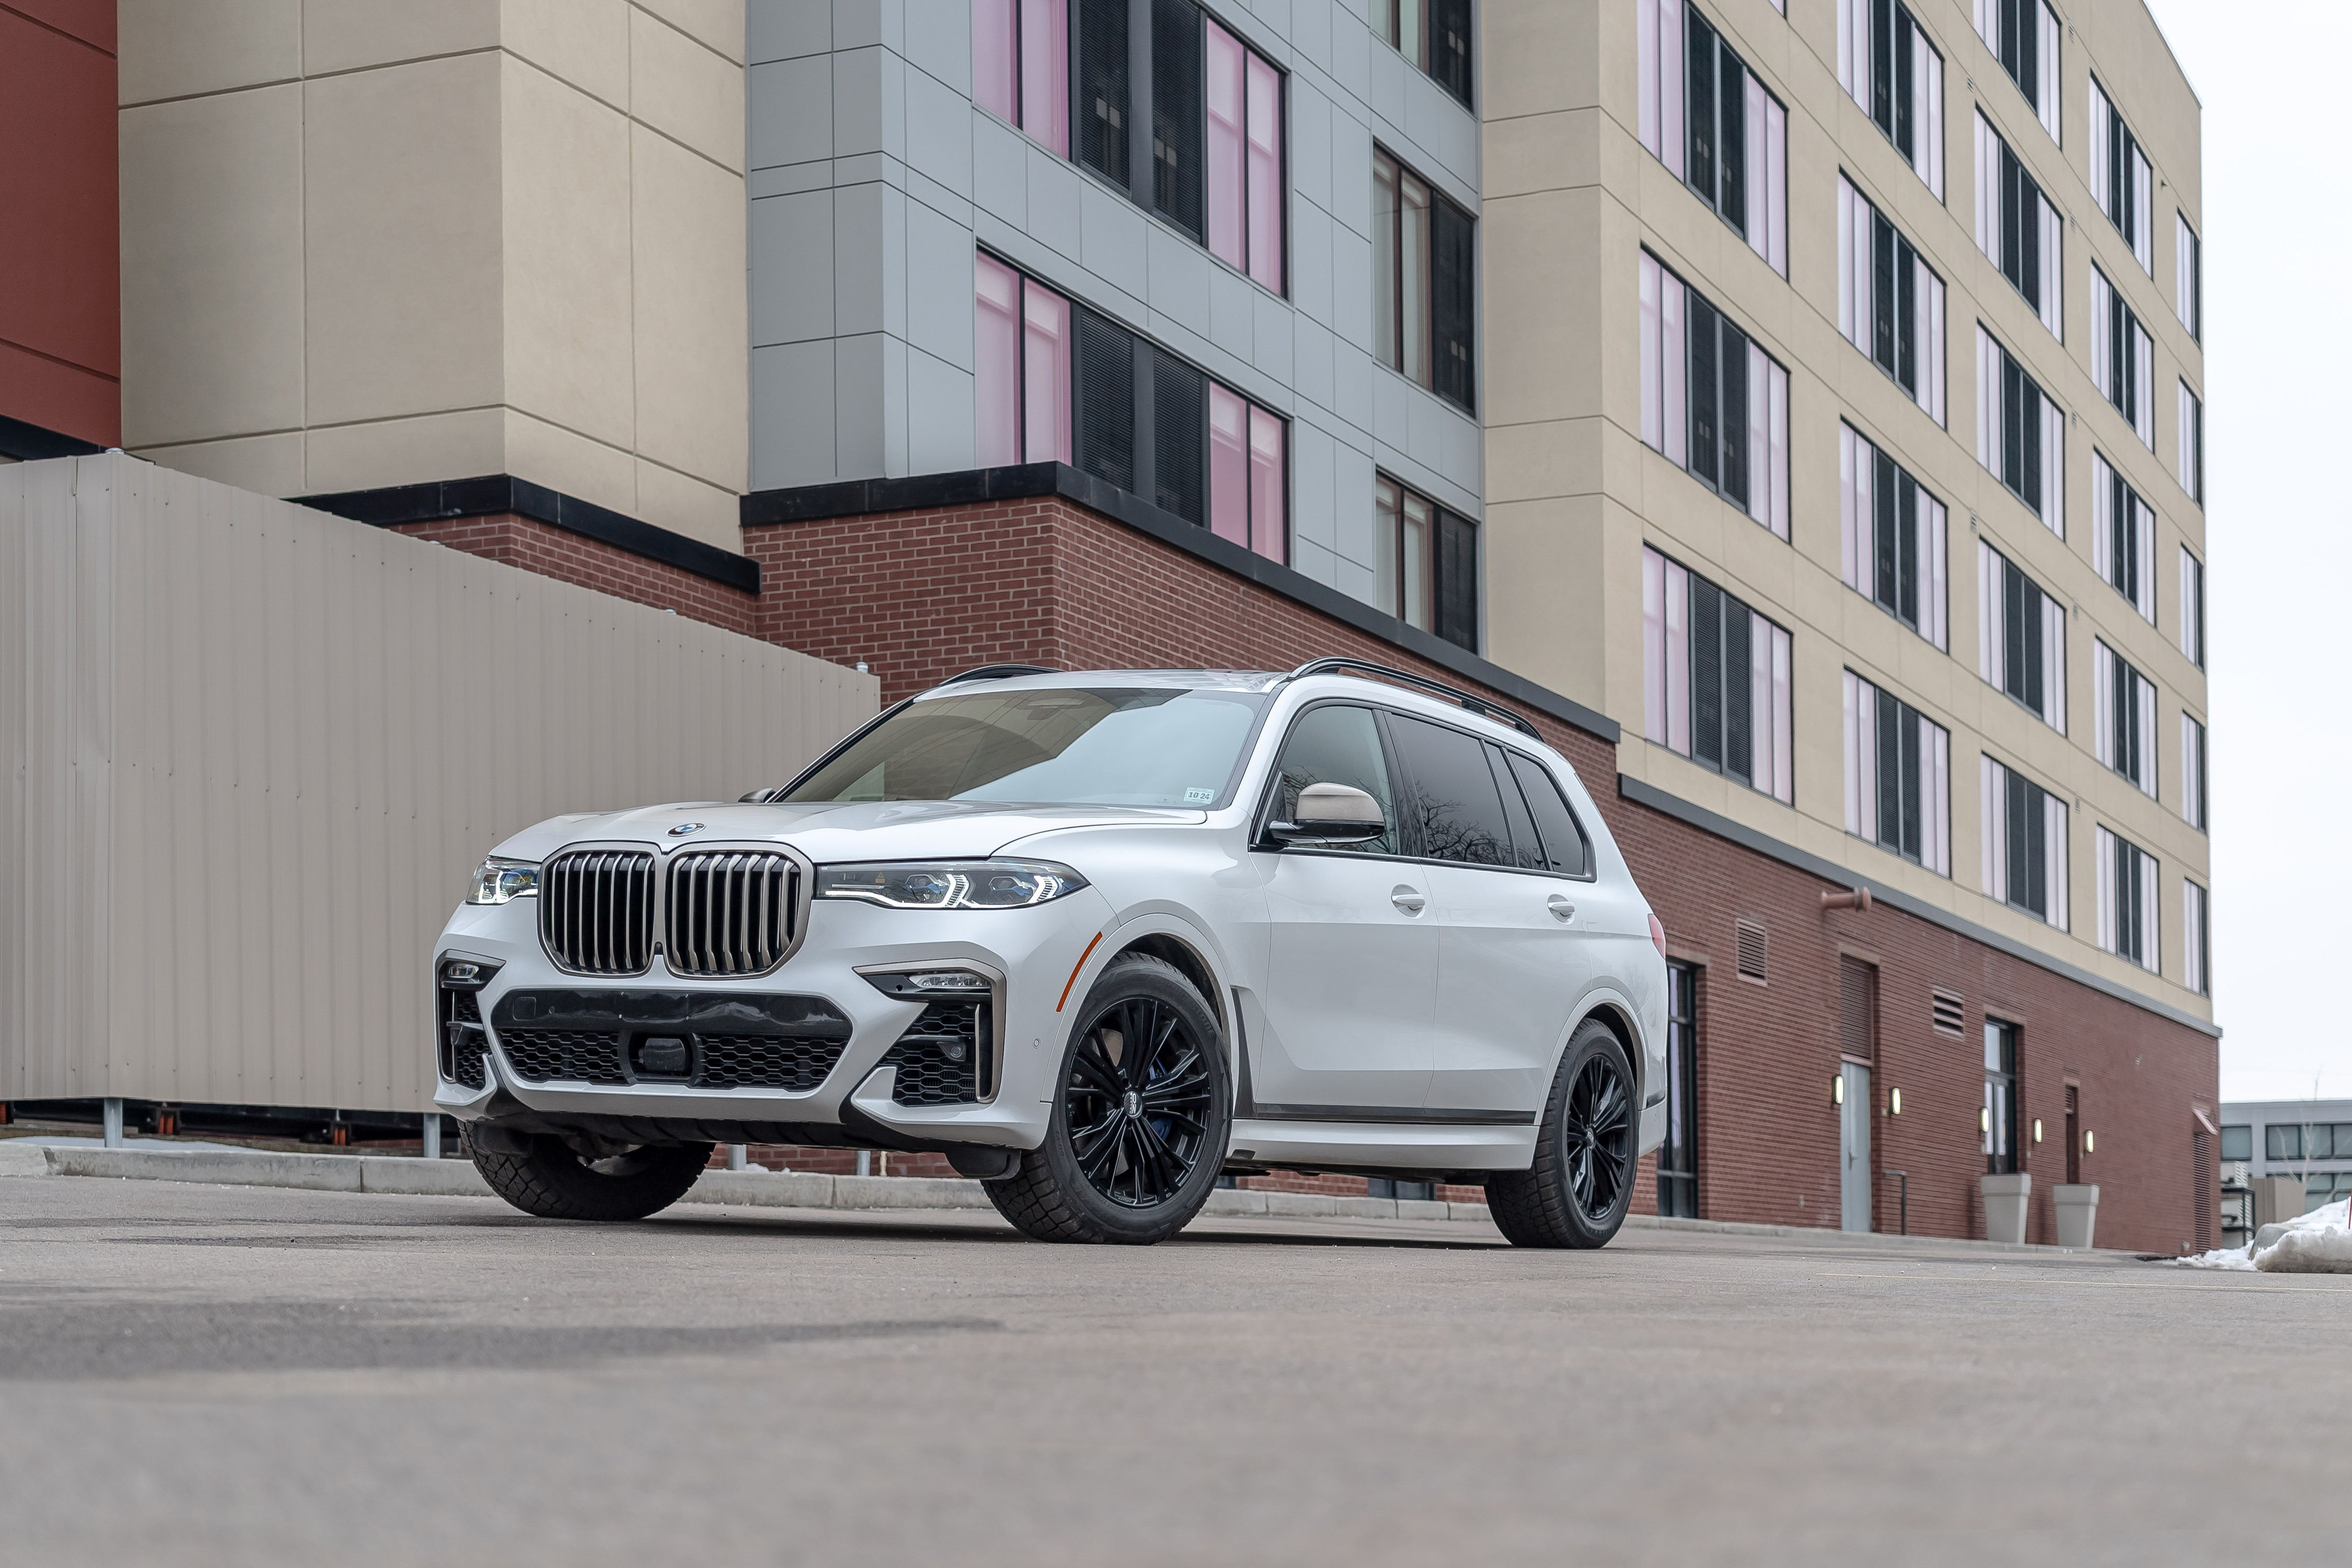 2020 Bmw X7 M50i Long Term Road Test 10 000 Mile Update